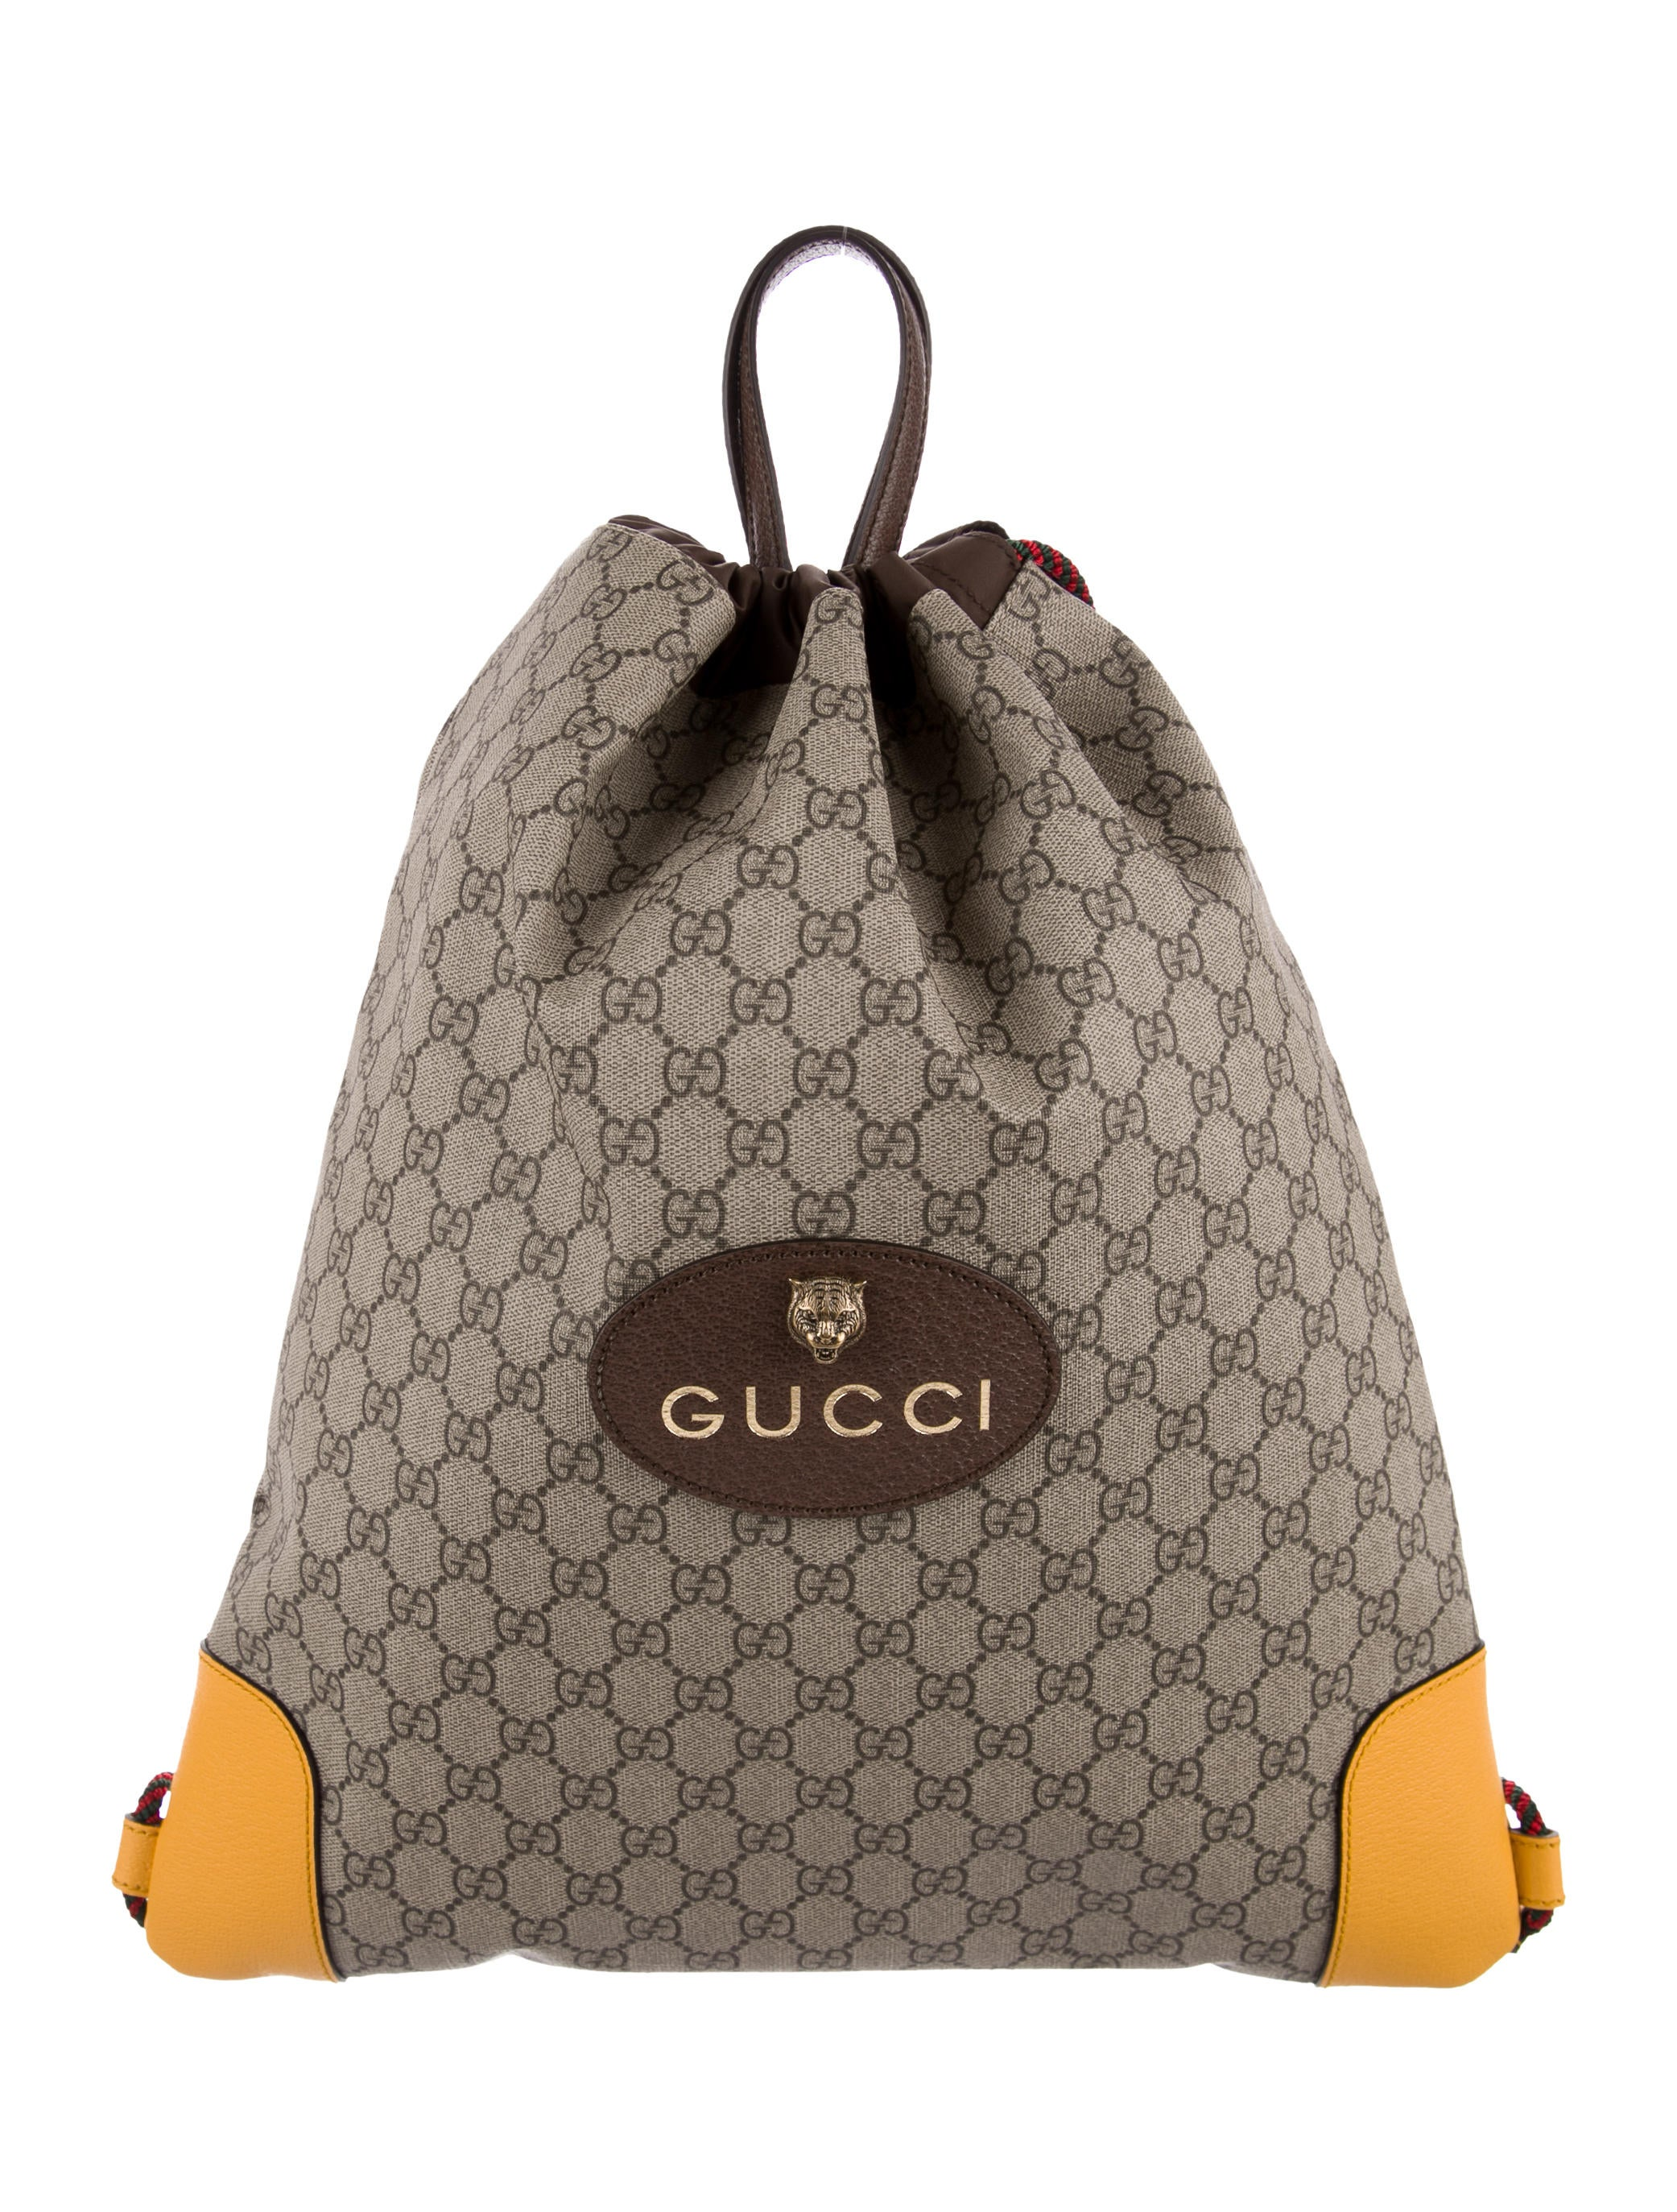 83ef62d96 Gucci 2017 GG Supreme Drawstring Backpack - Bags - GUC180138 | The ...